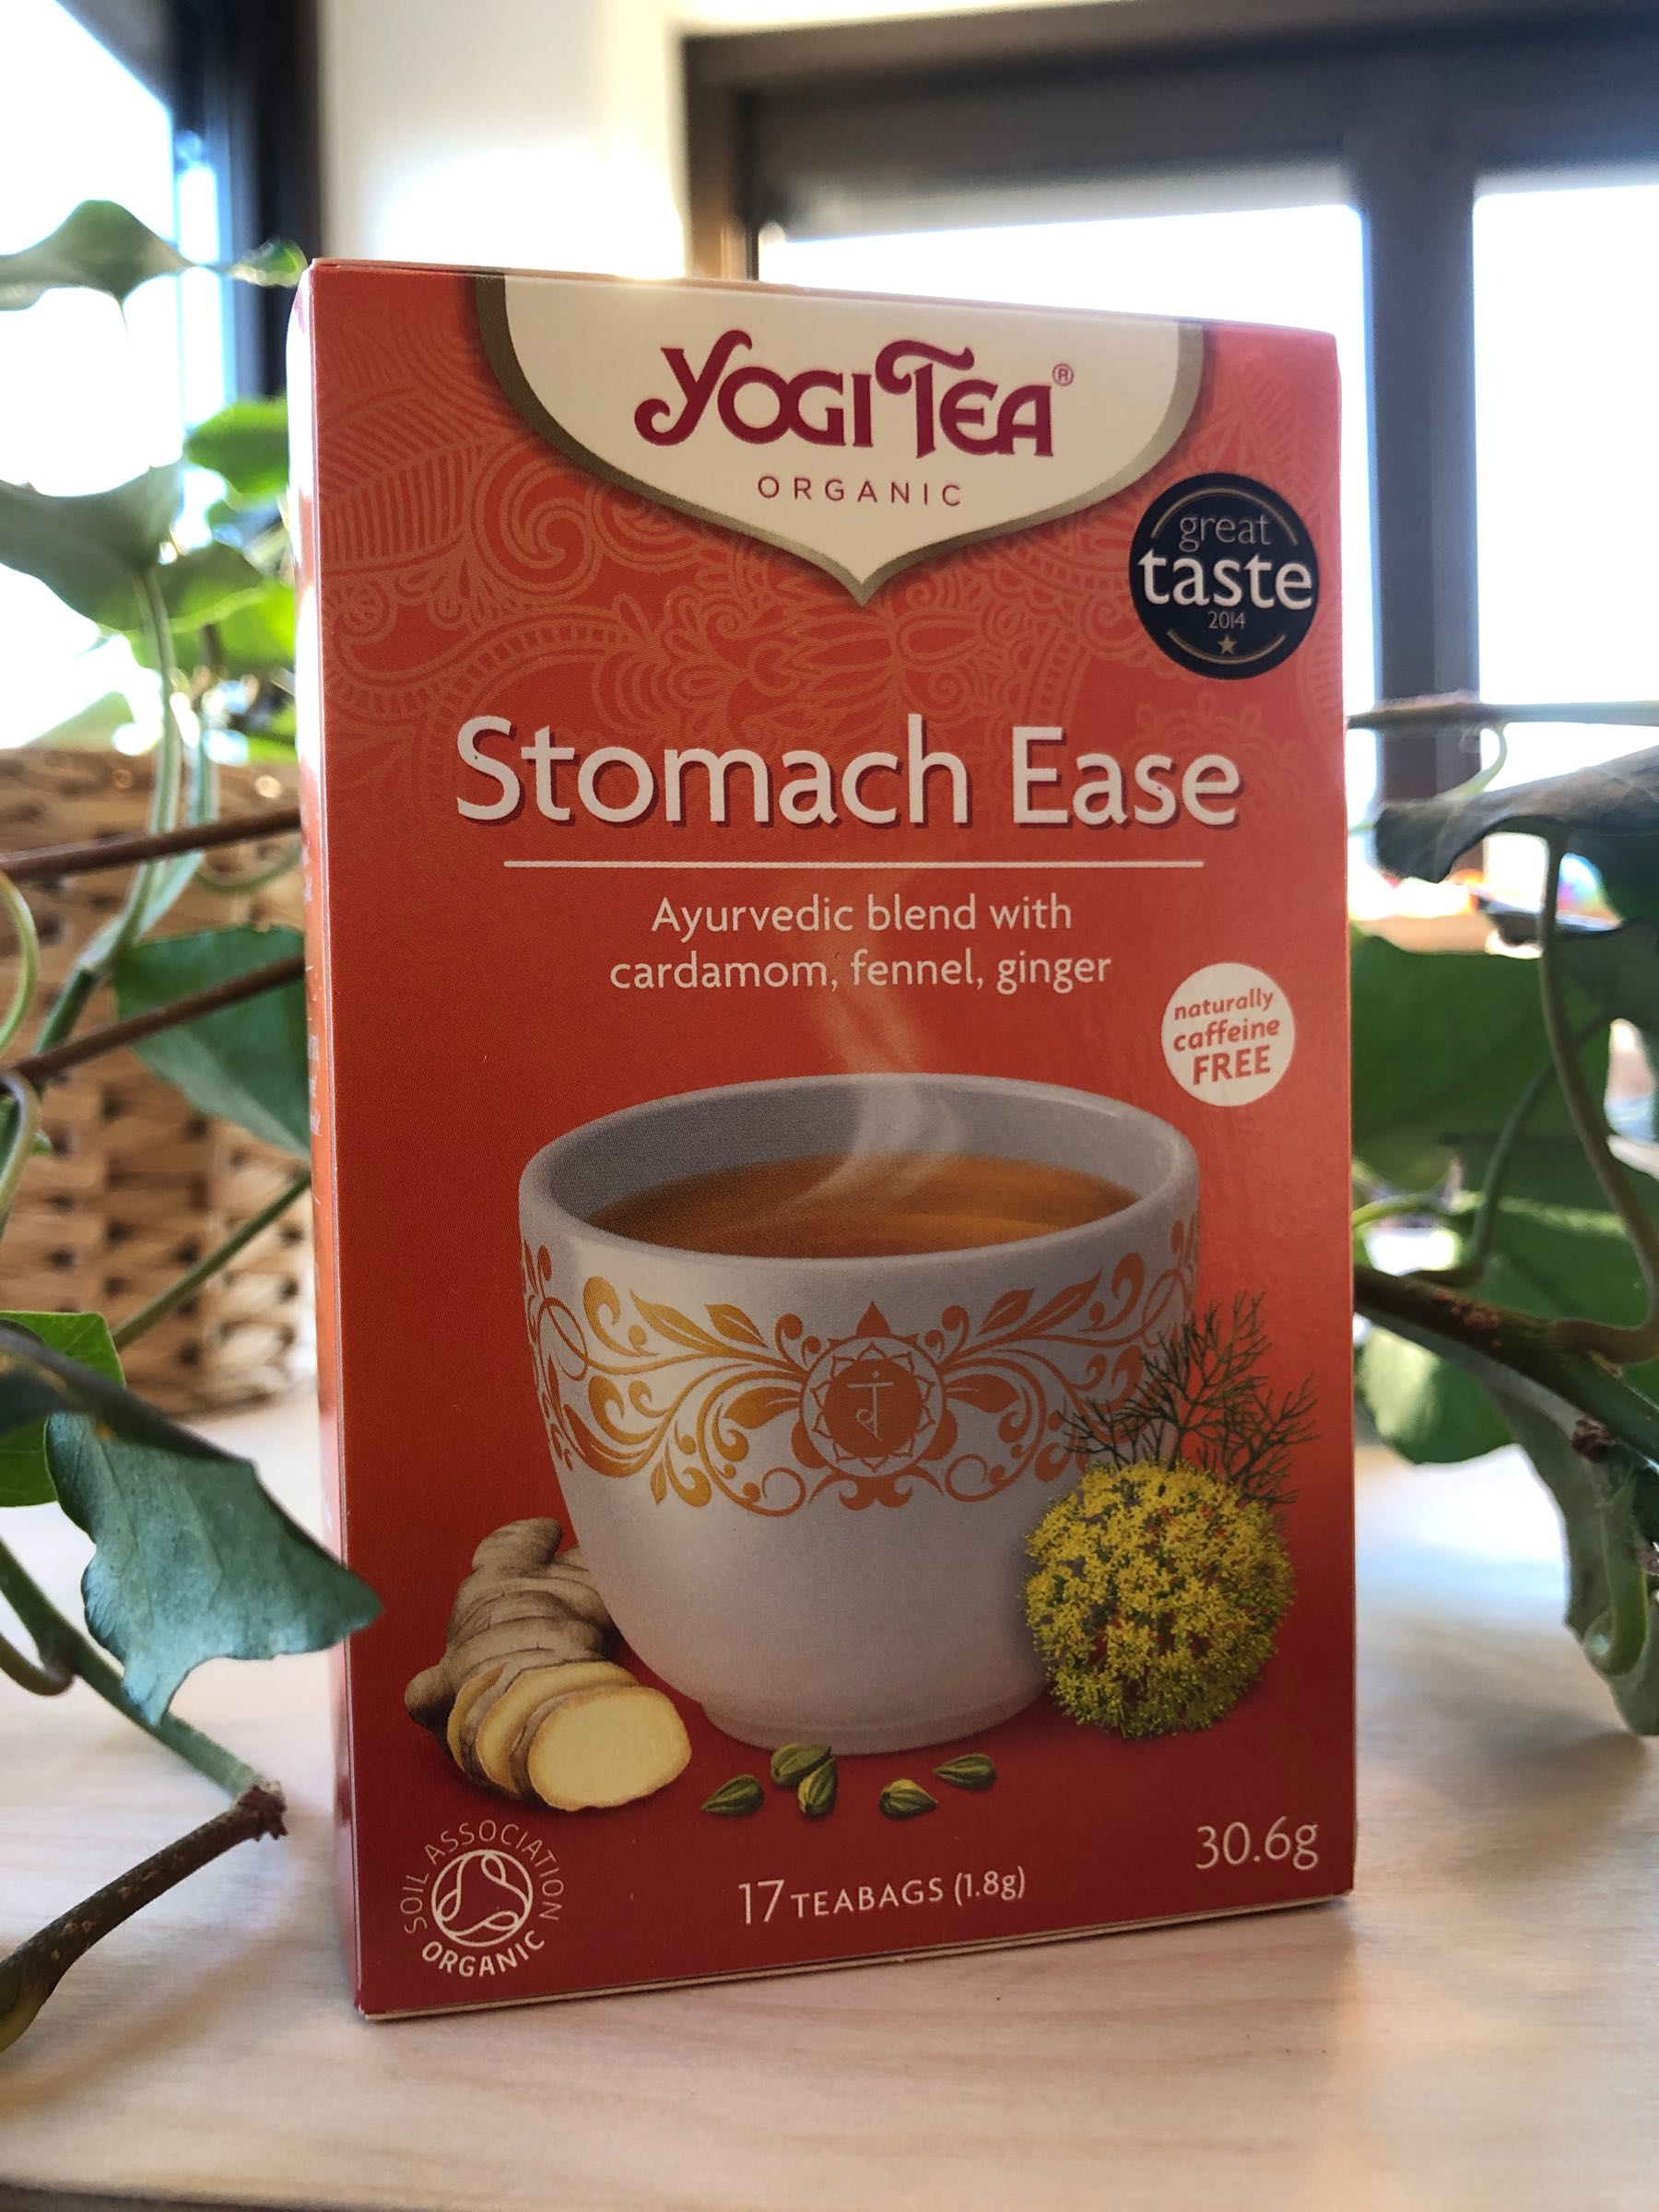 Stomach ease Yogi Te